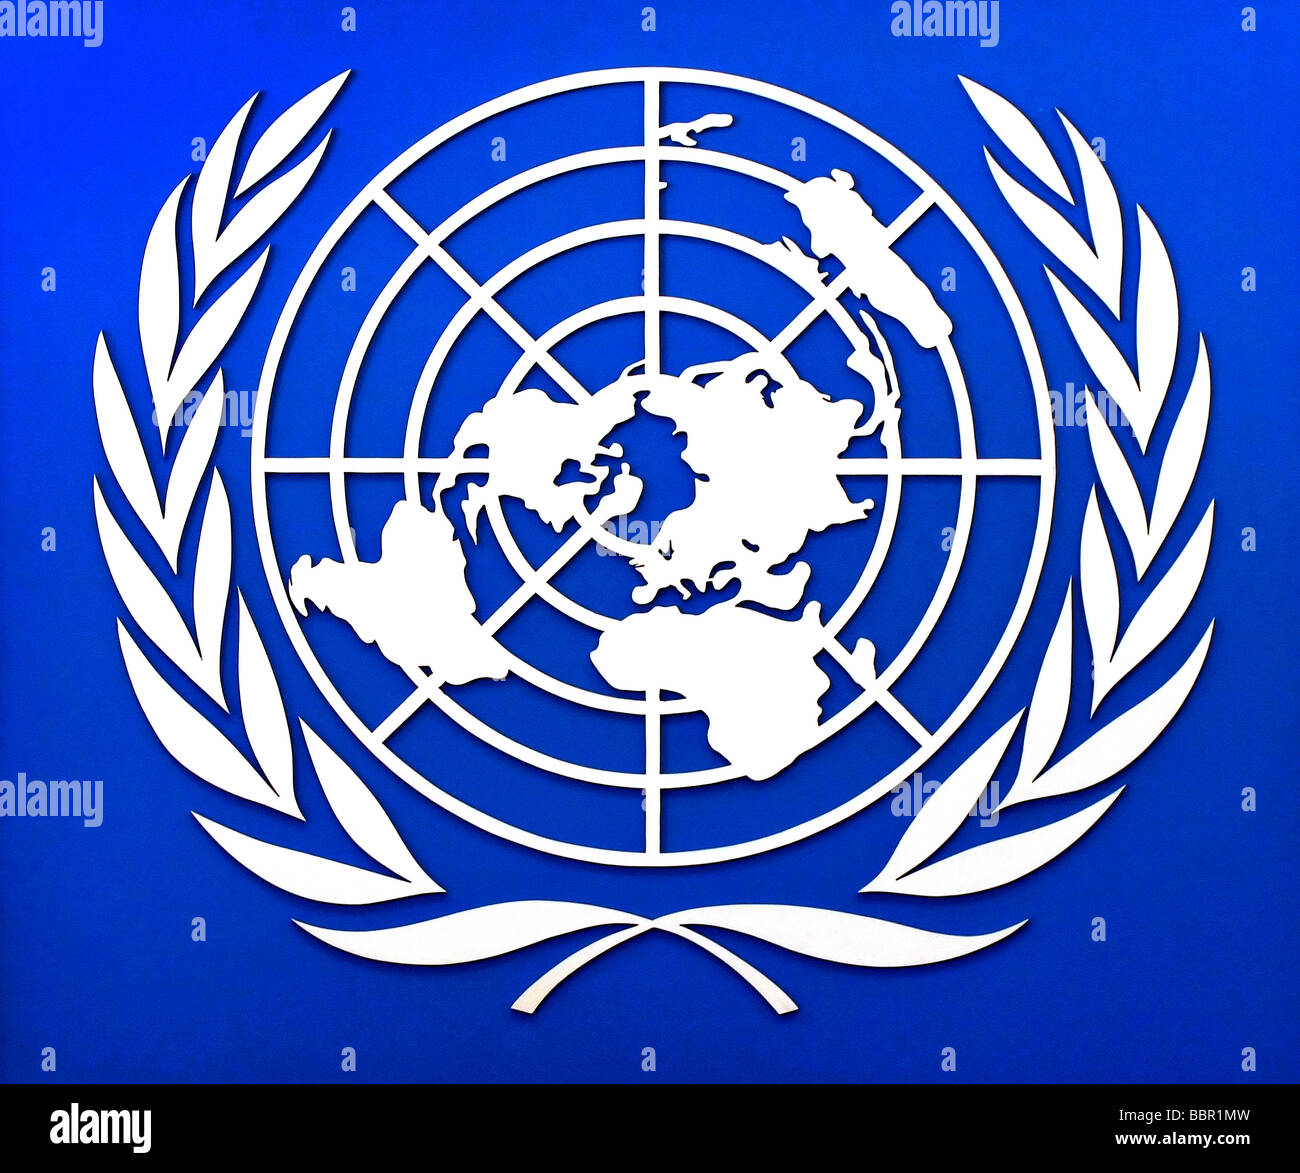 logo of the uno palace of nations united nations offices geneva